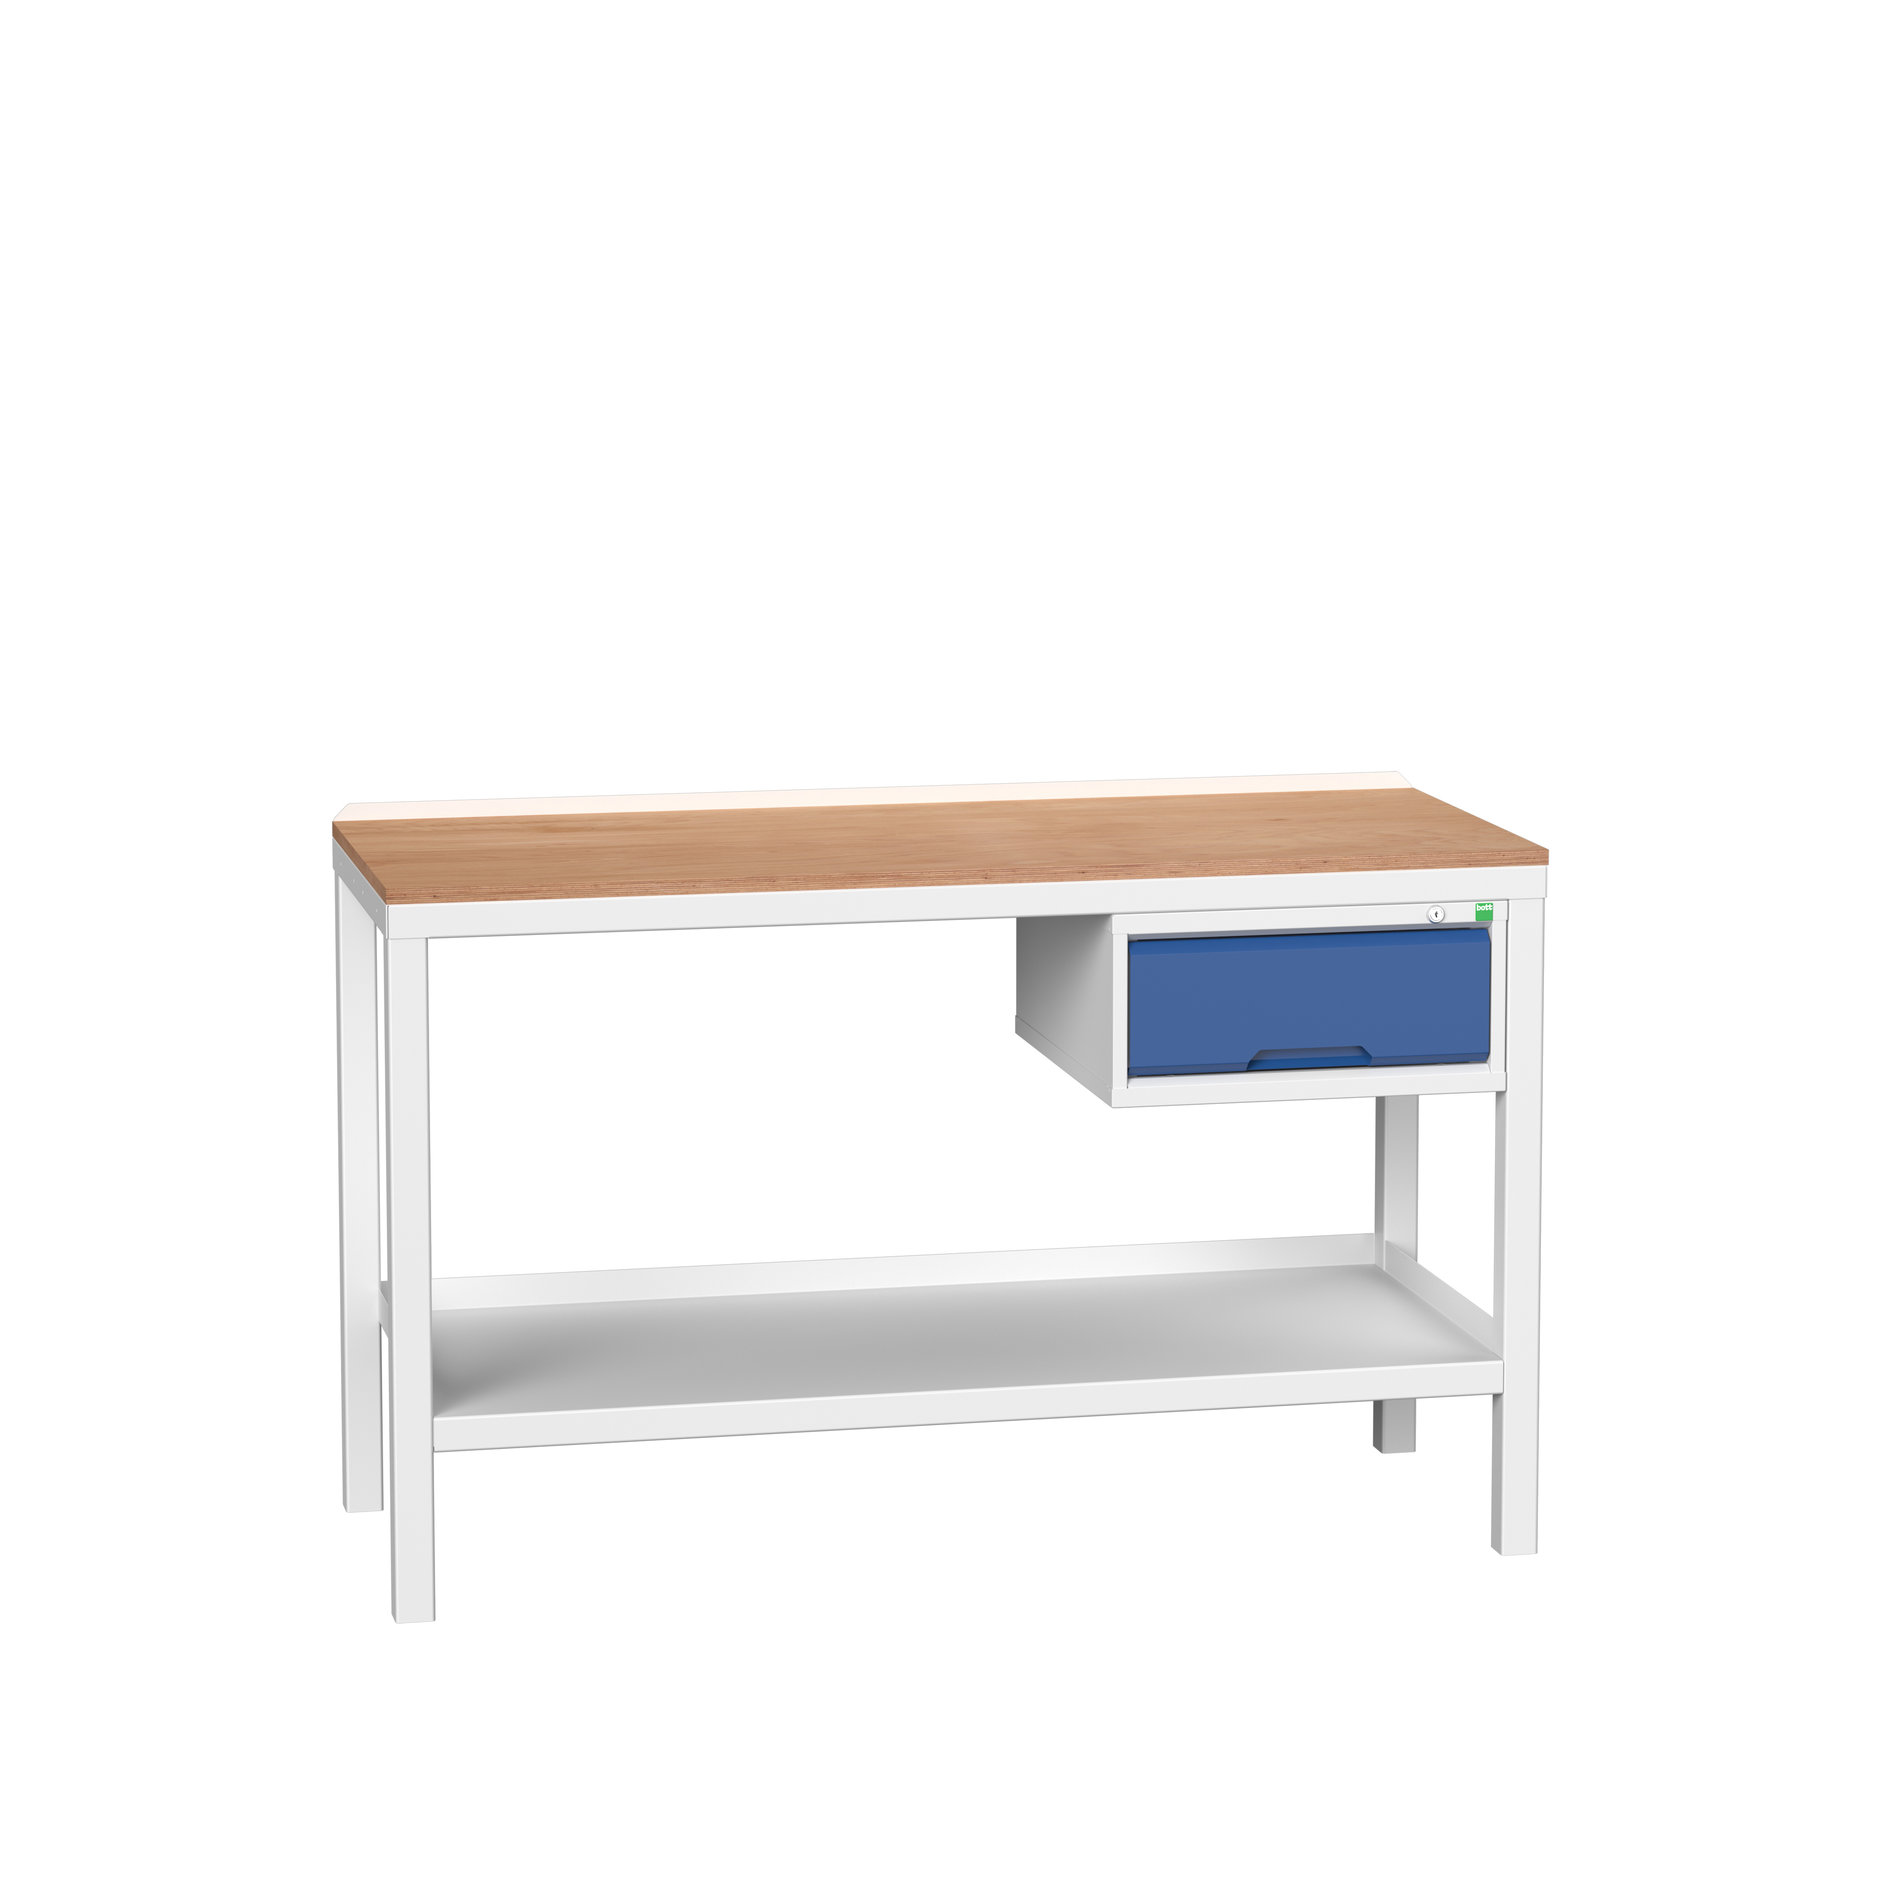 Bott Verso Welded Bench With 1 Drawer Cabinet